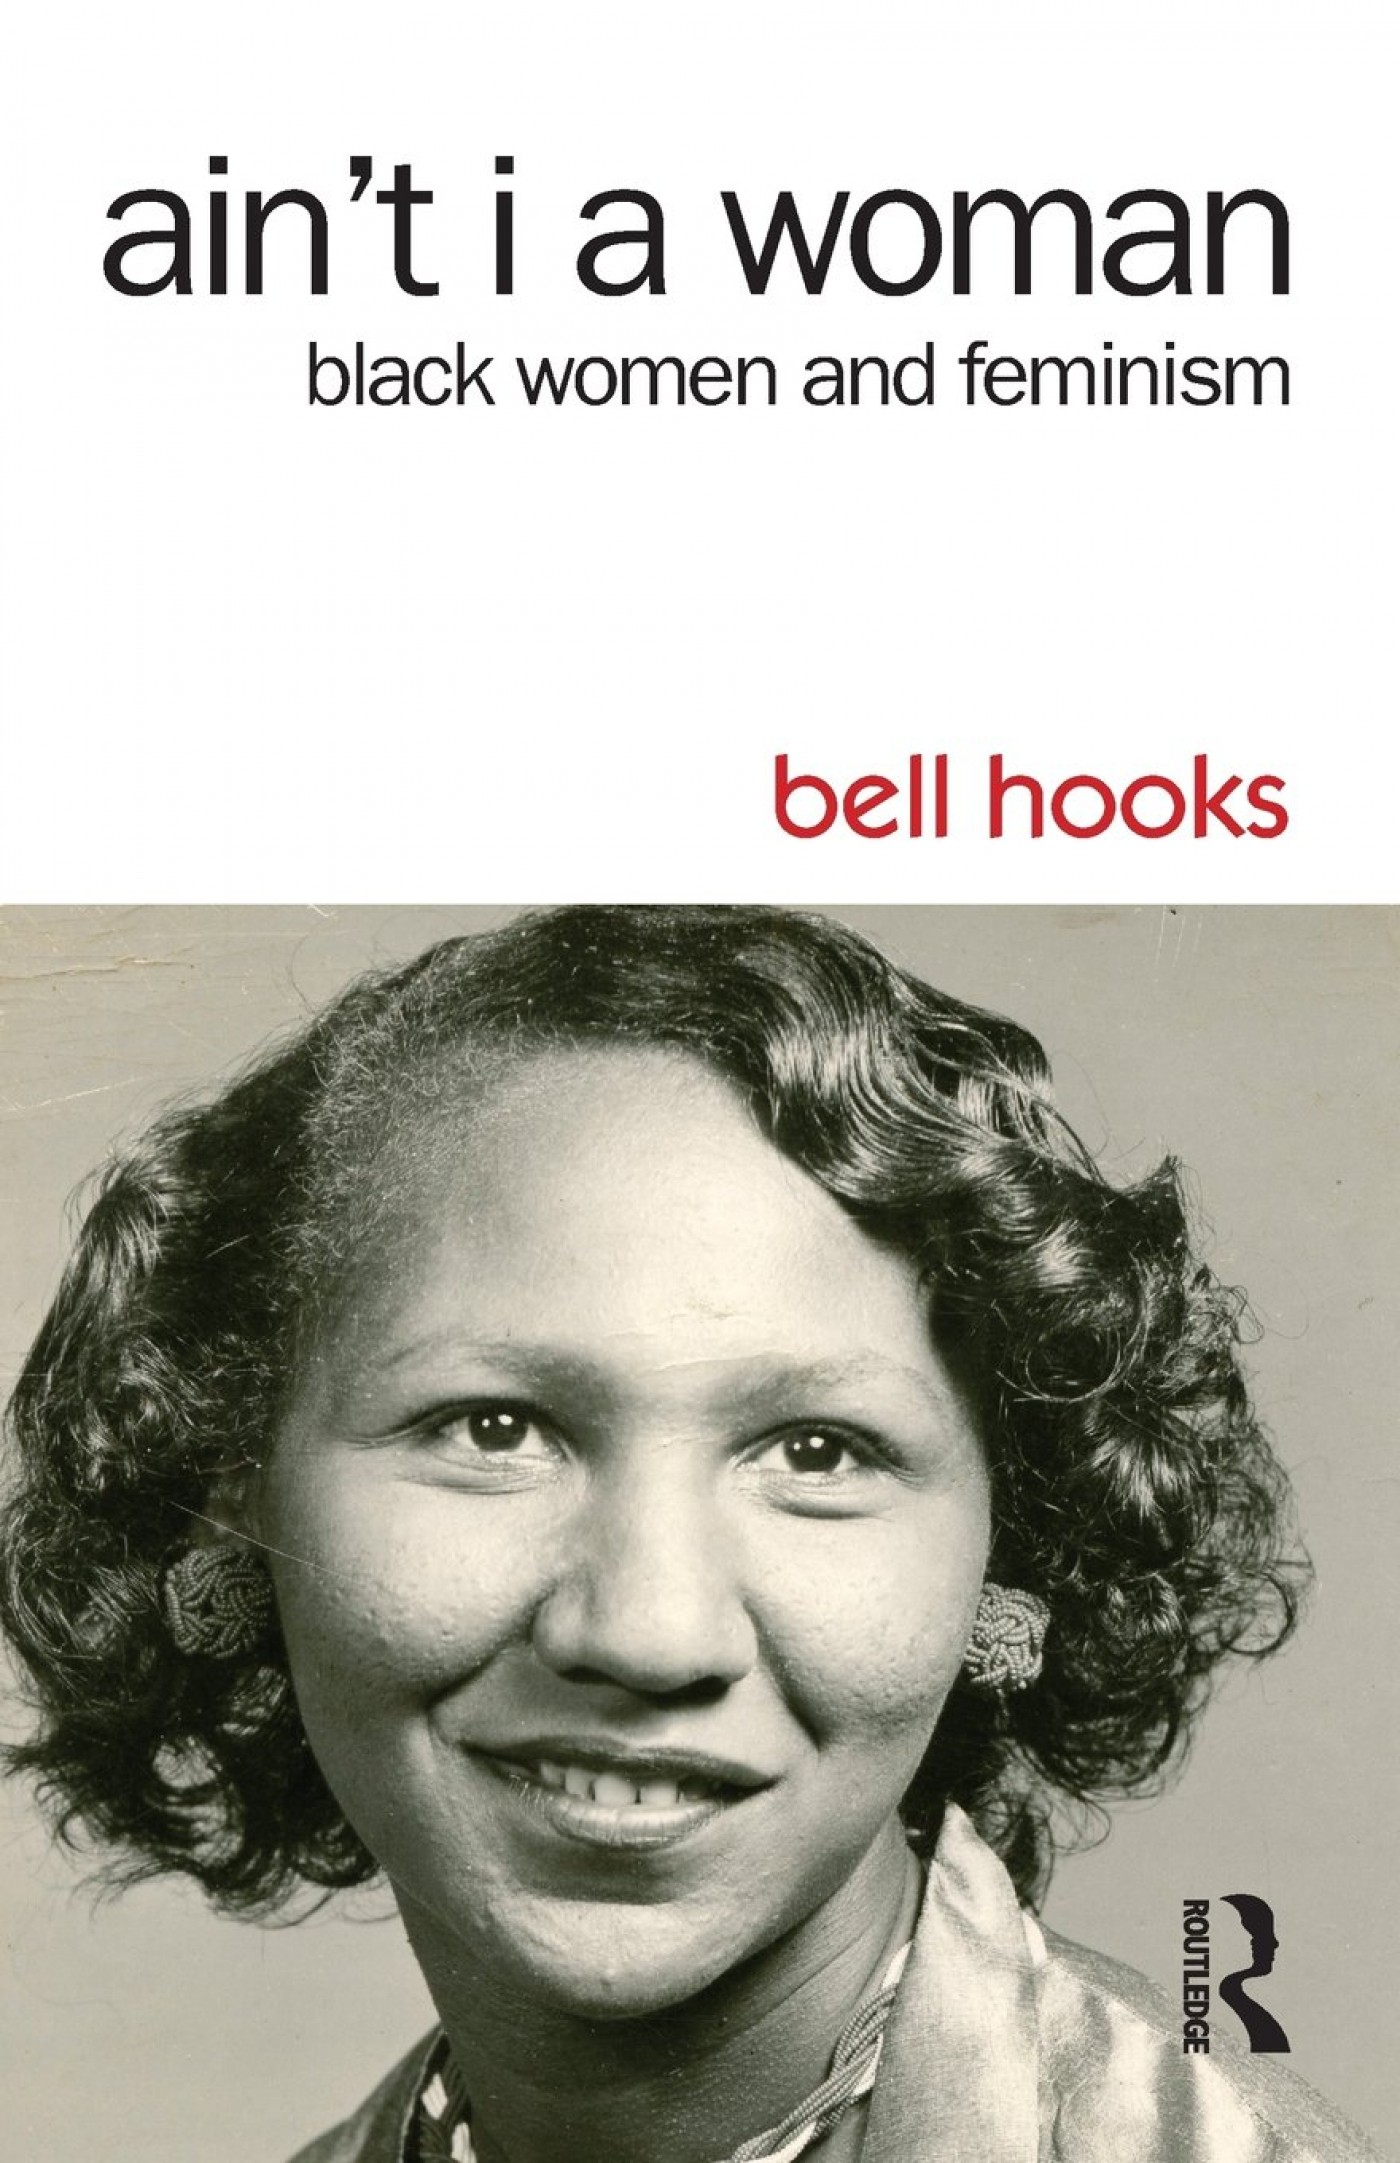 003 Essay Example 71kbnqfypdl Bell Hooks Best Essays Keeping Close To Home Feminism 1400